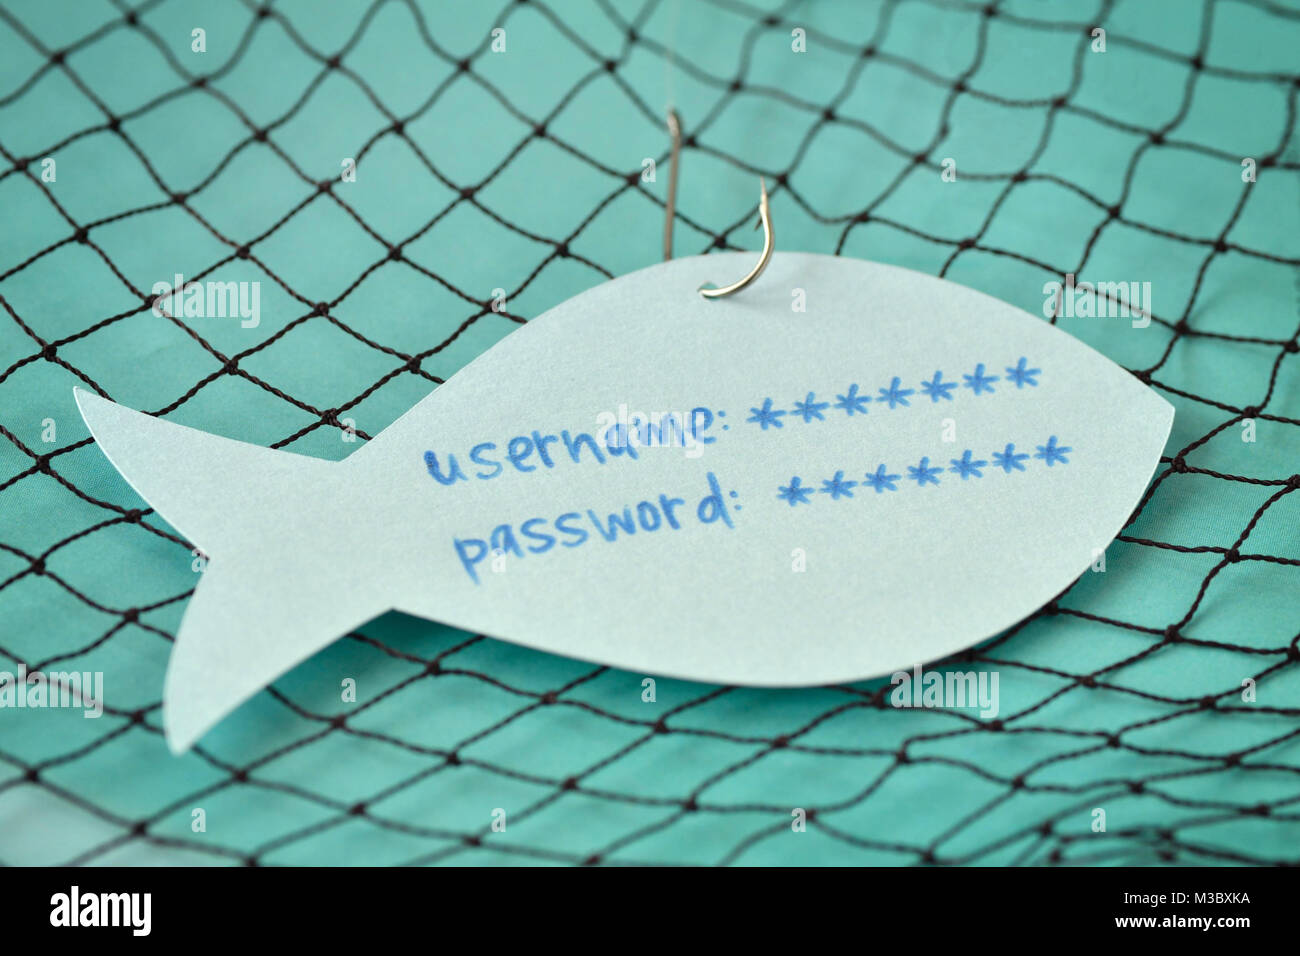 Username and password written on a paper note in the shape of a fish attached to a hook - Phishing and internet - Stock Image